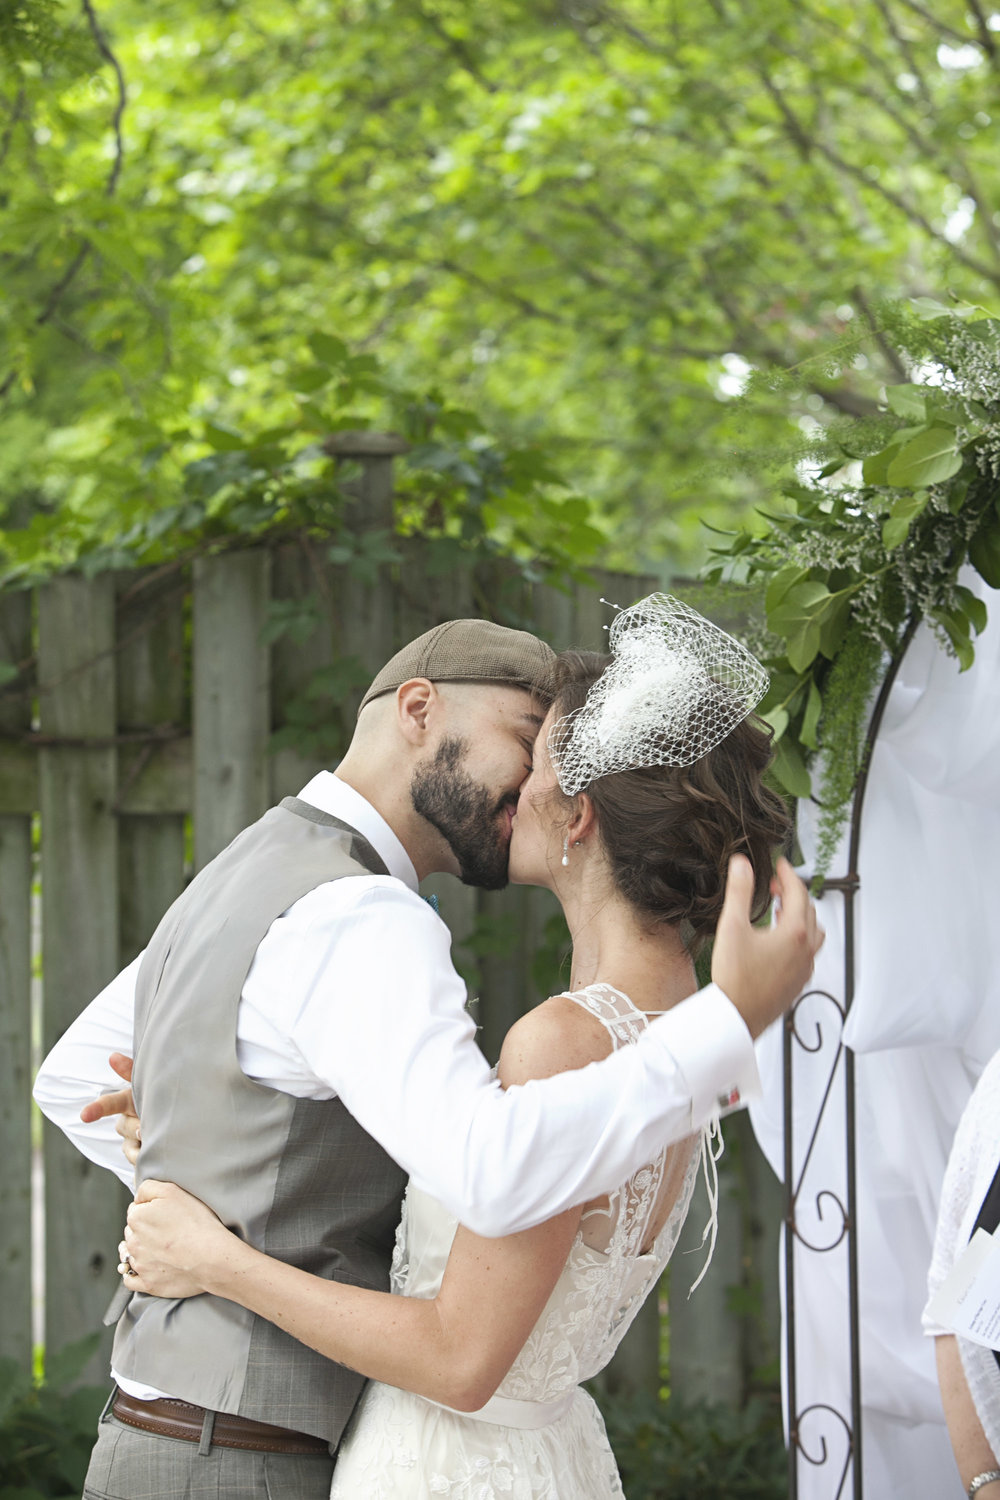 Bride and groom's first kiss at backyard wedding